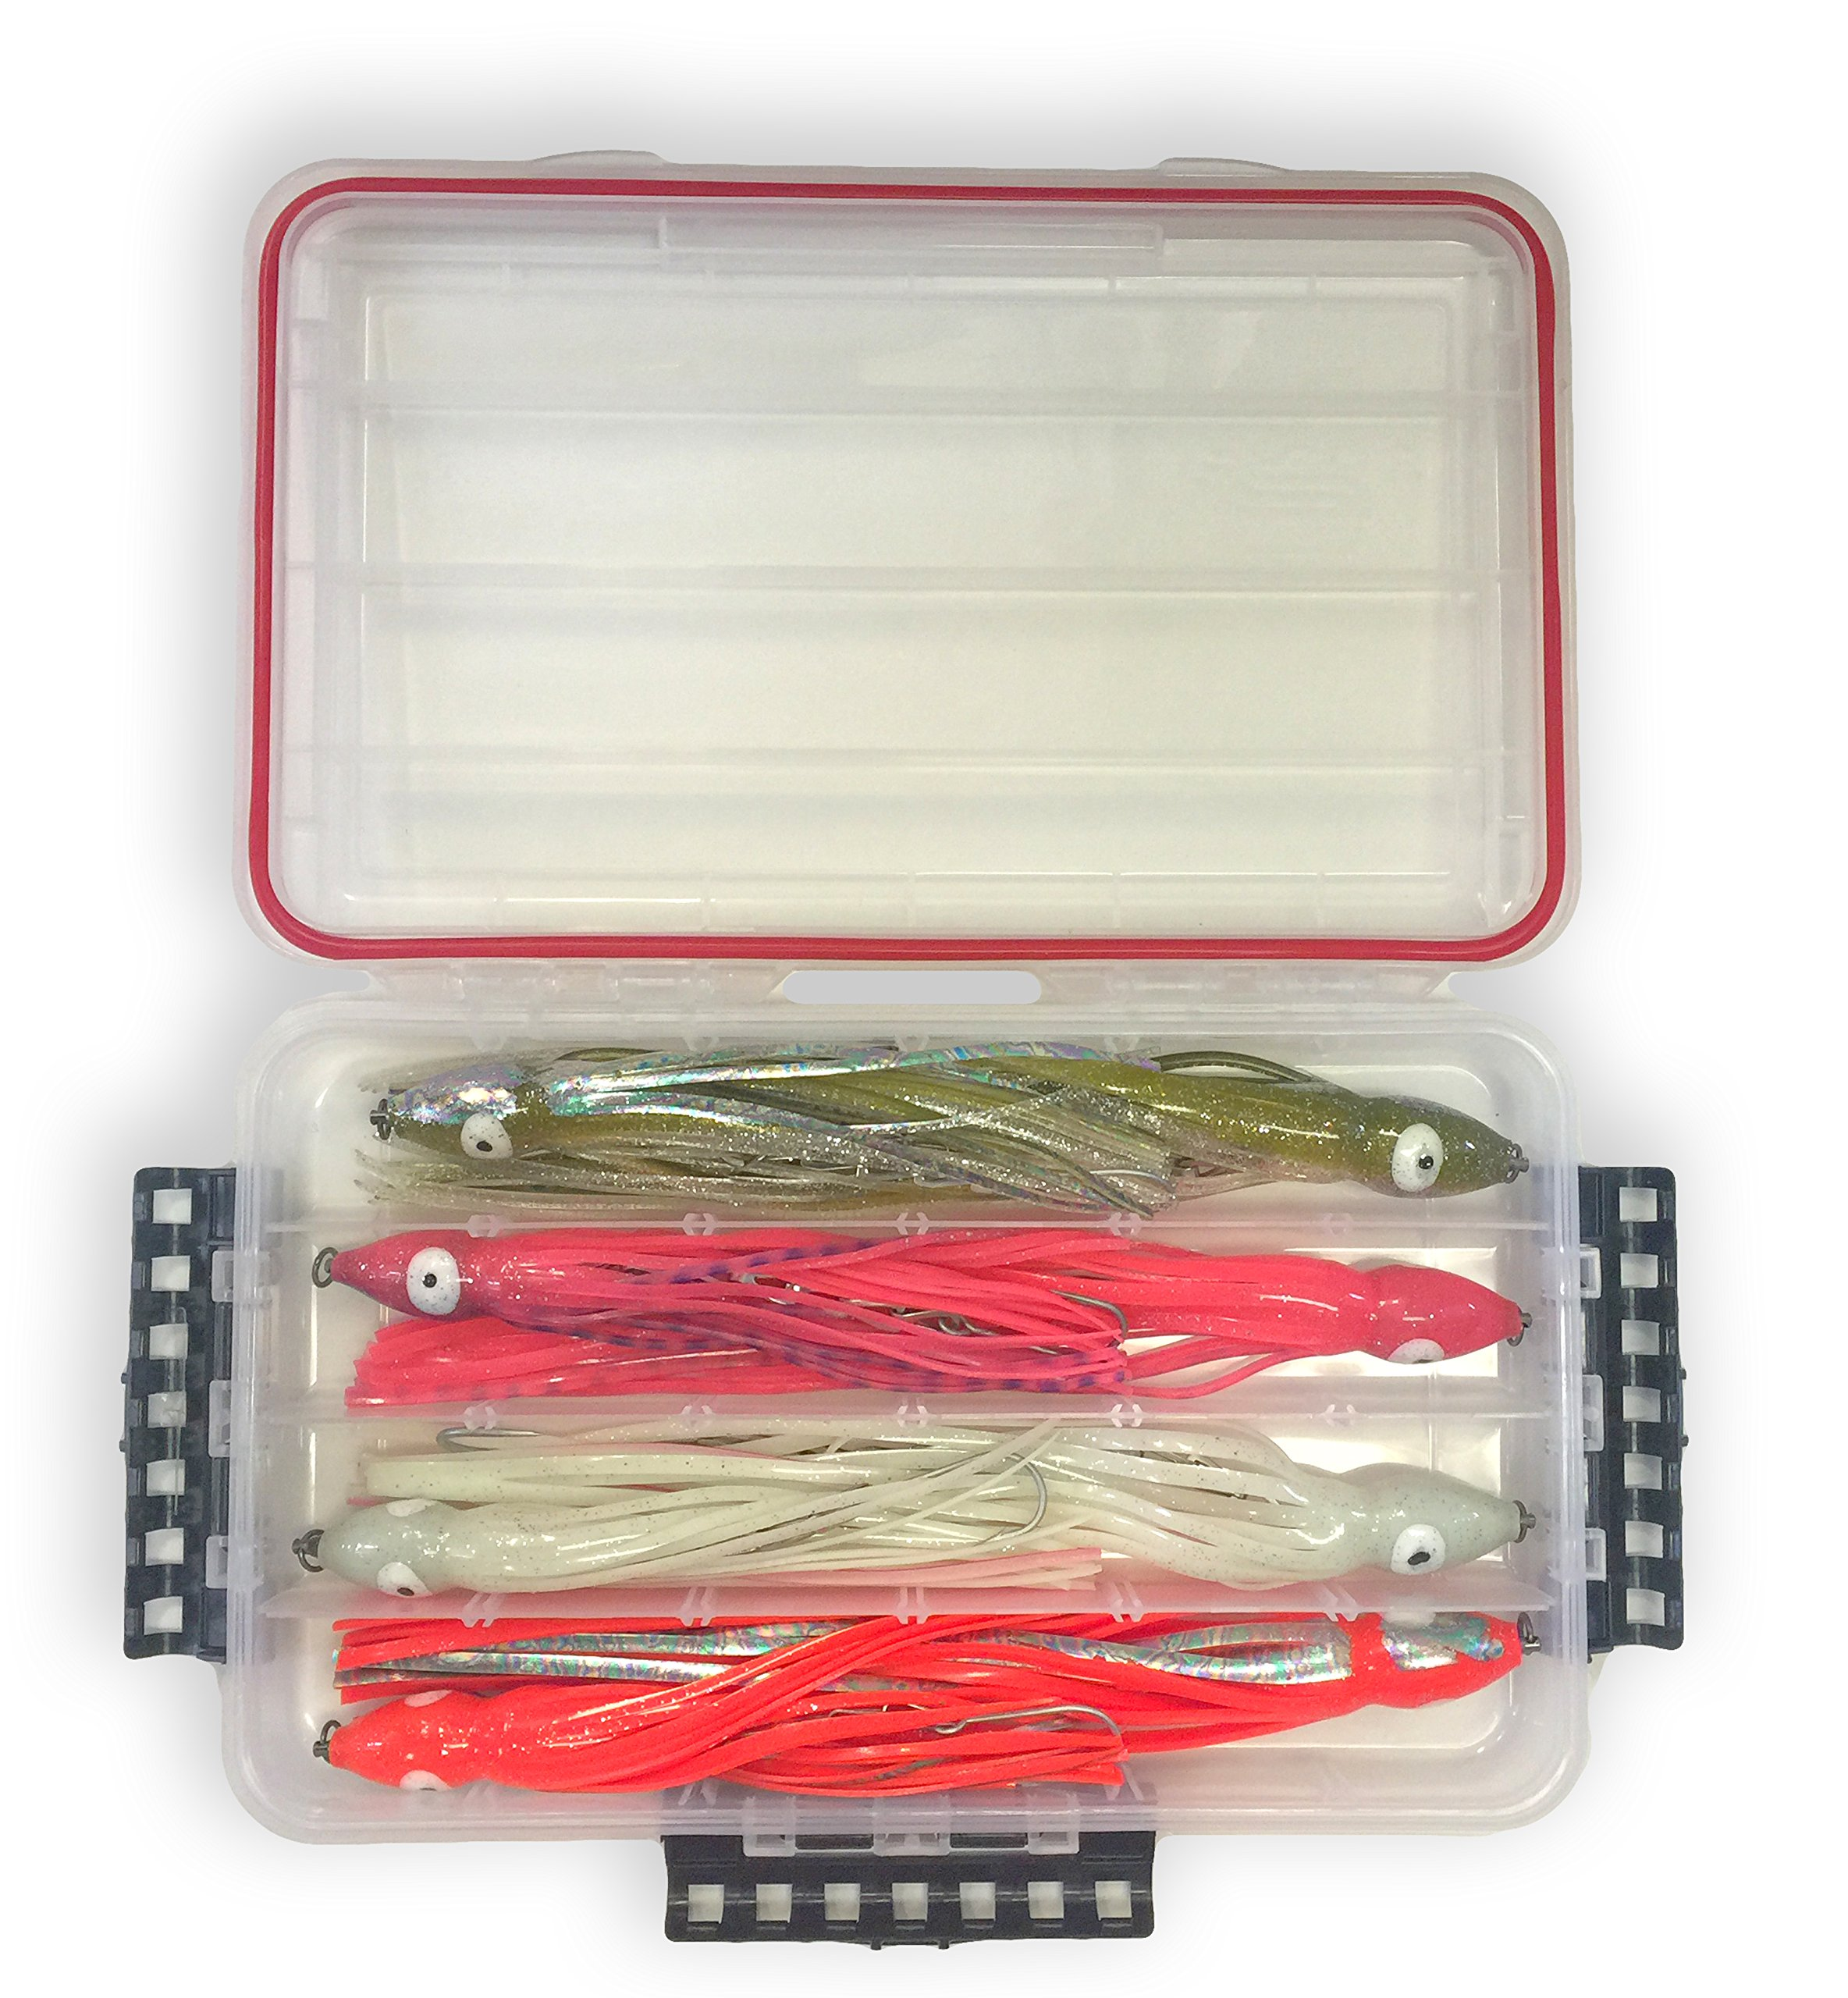 SI Perfect Trolling Squid Lure Kit by Standard Issue Tackle